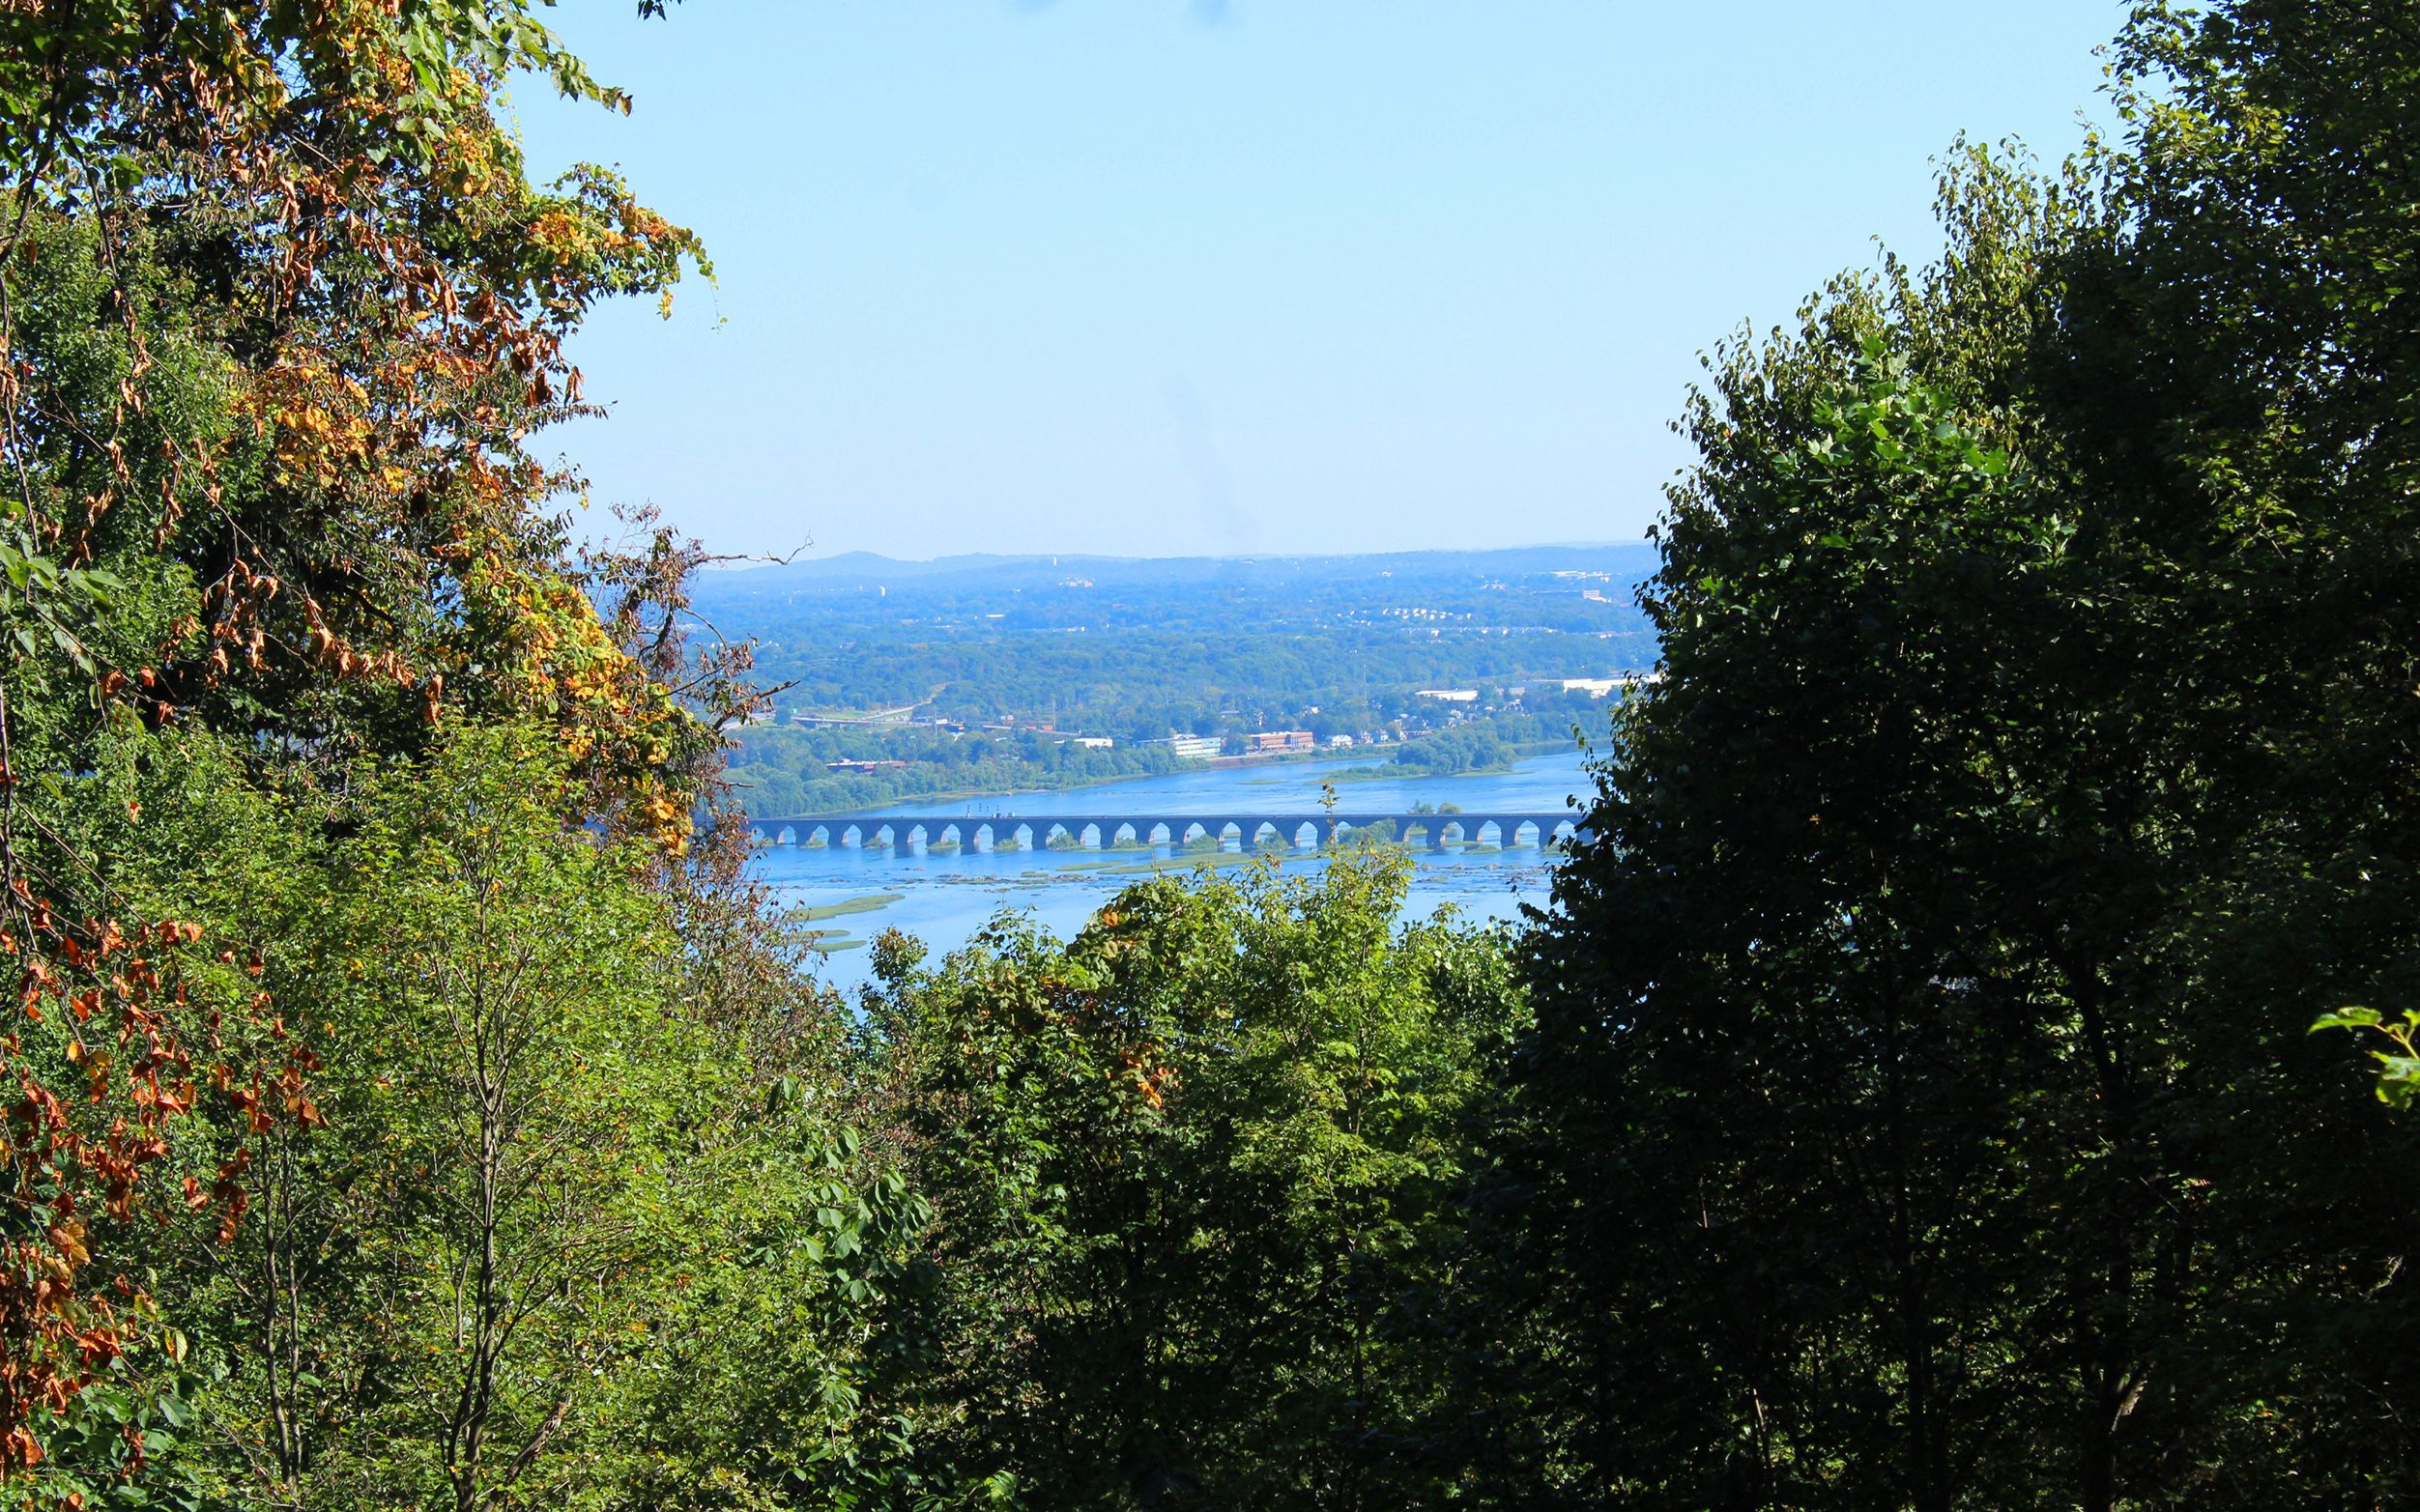 View of the Susquehanna River from a trail on Cove Mountain. A break in the center of a stand of trees reveals a bridge crossing the wide river with buildings behind.